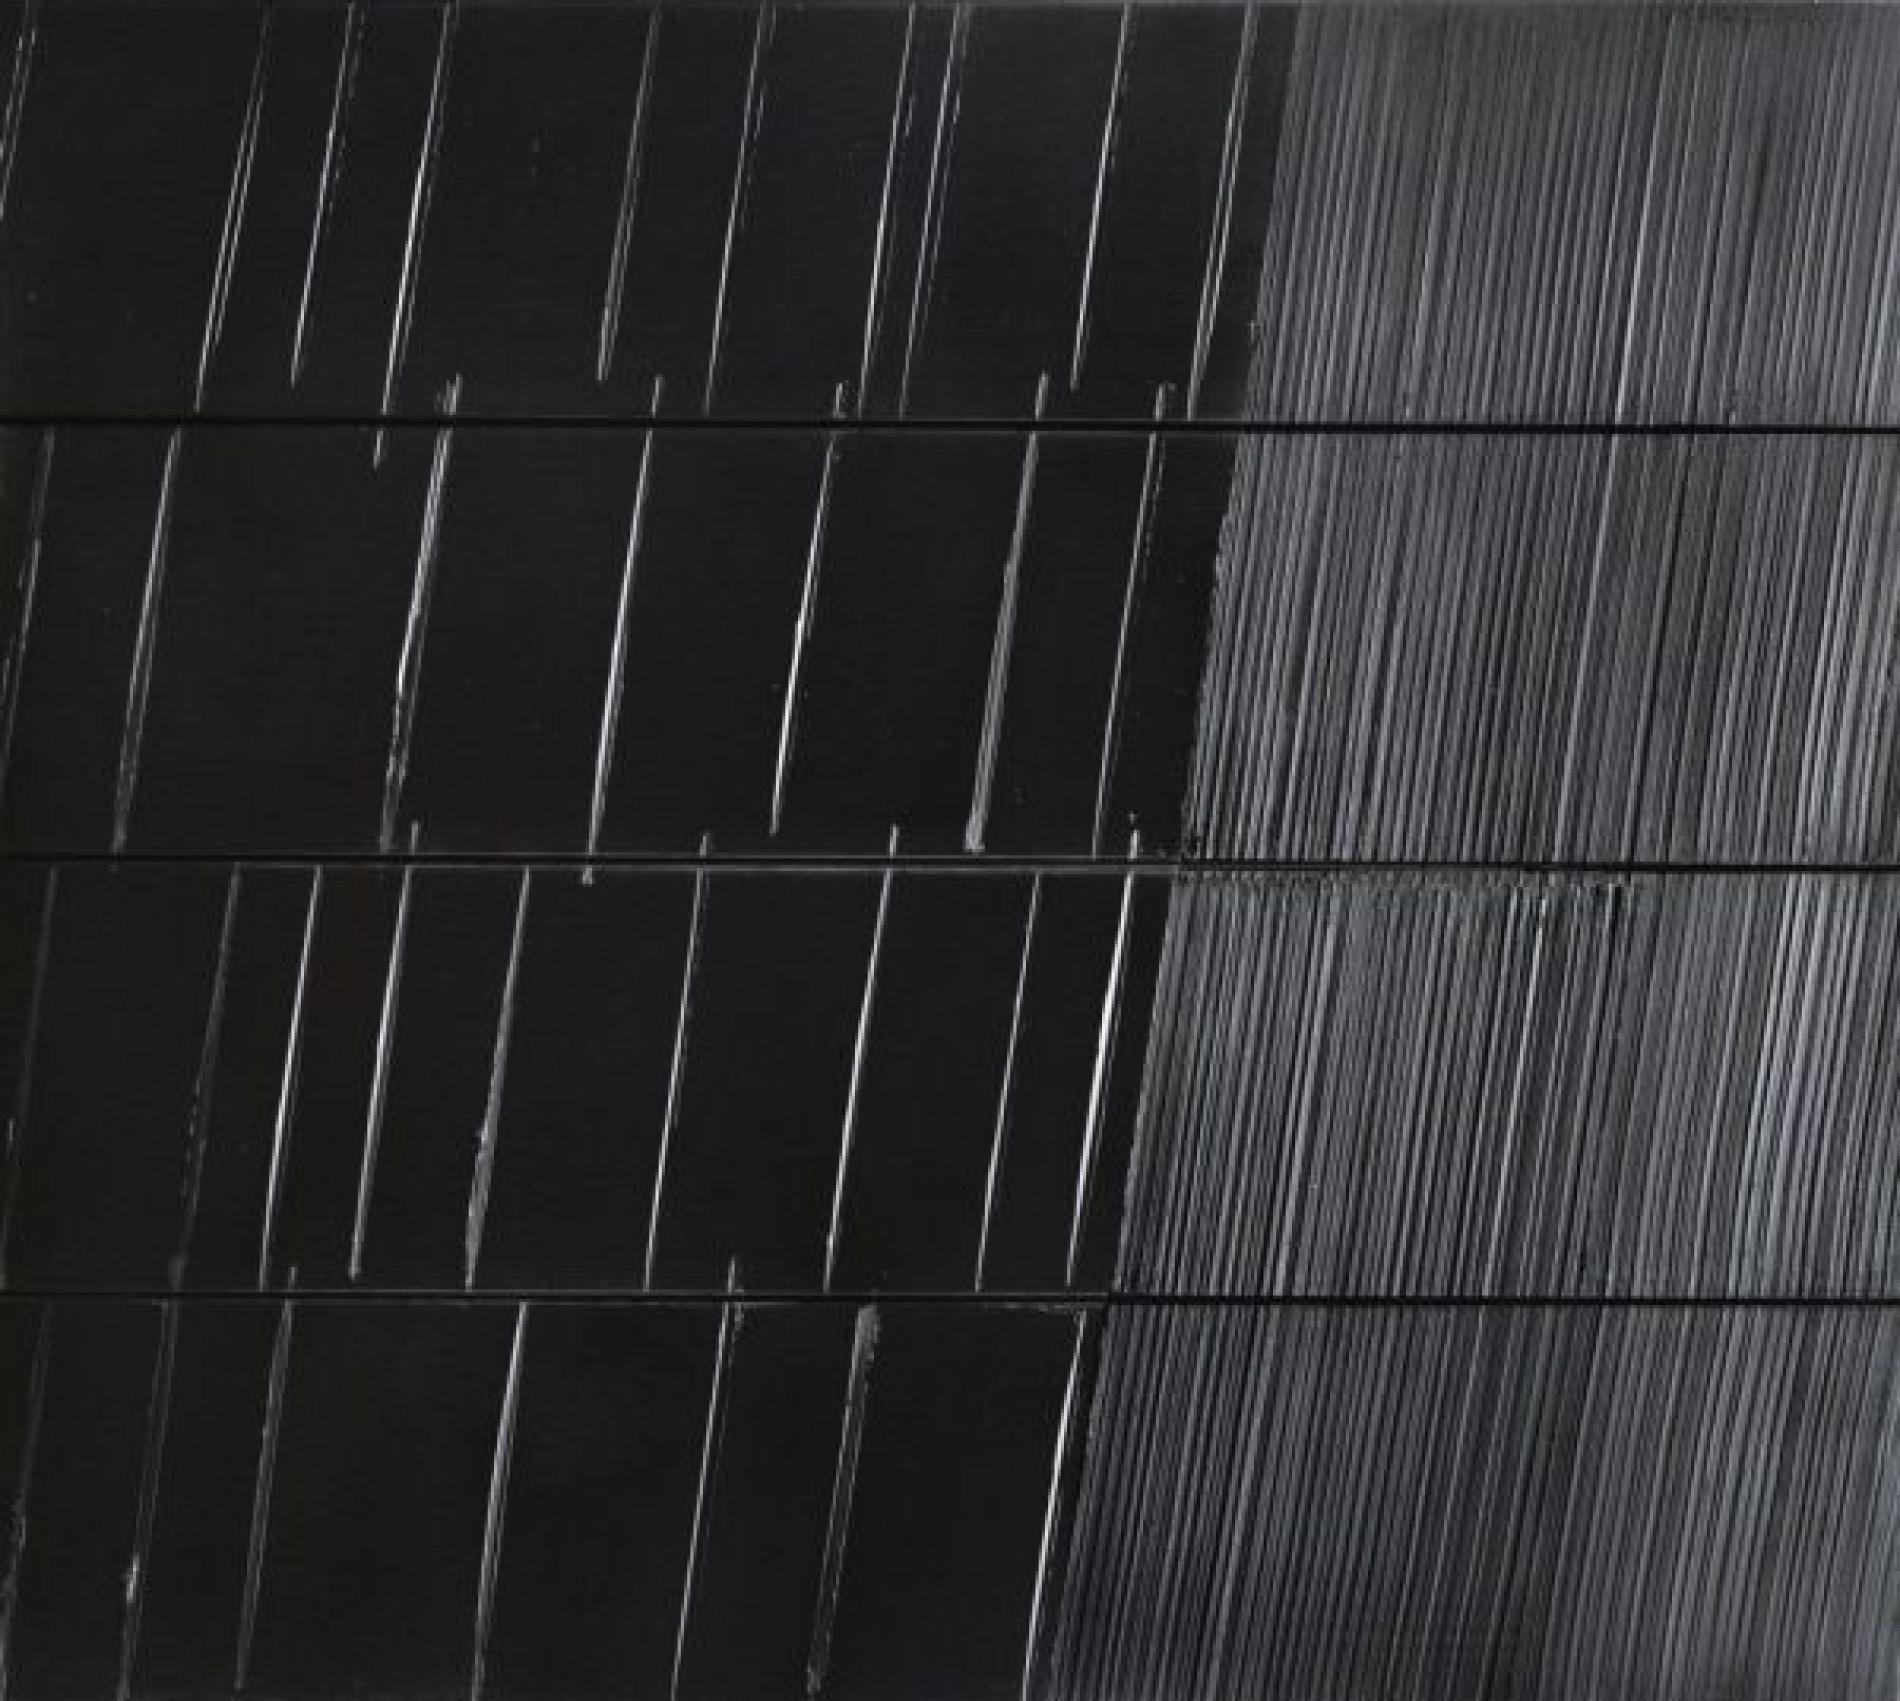 MUSEUM: Soulages Museum